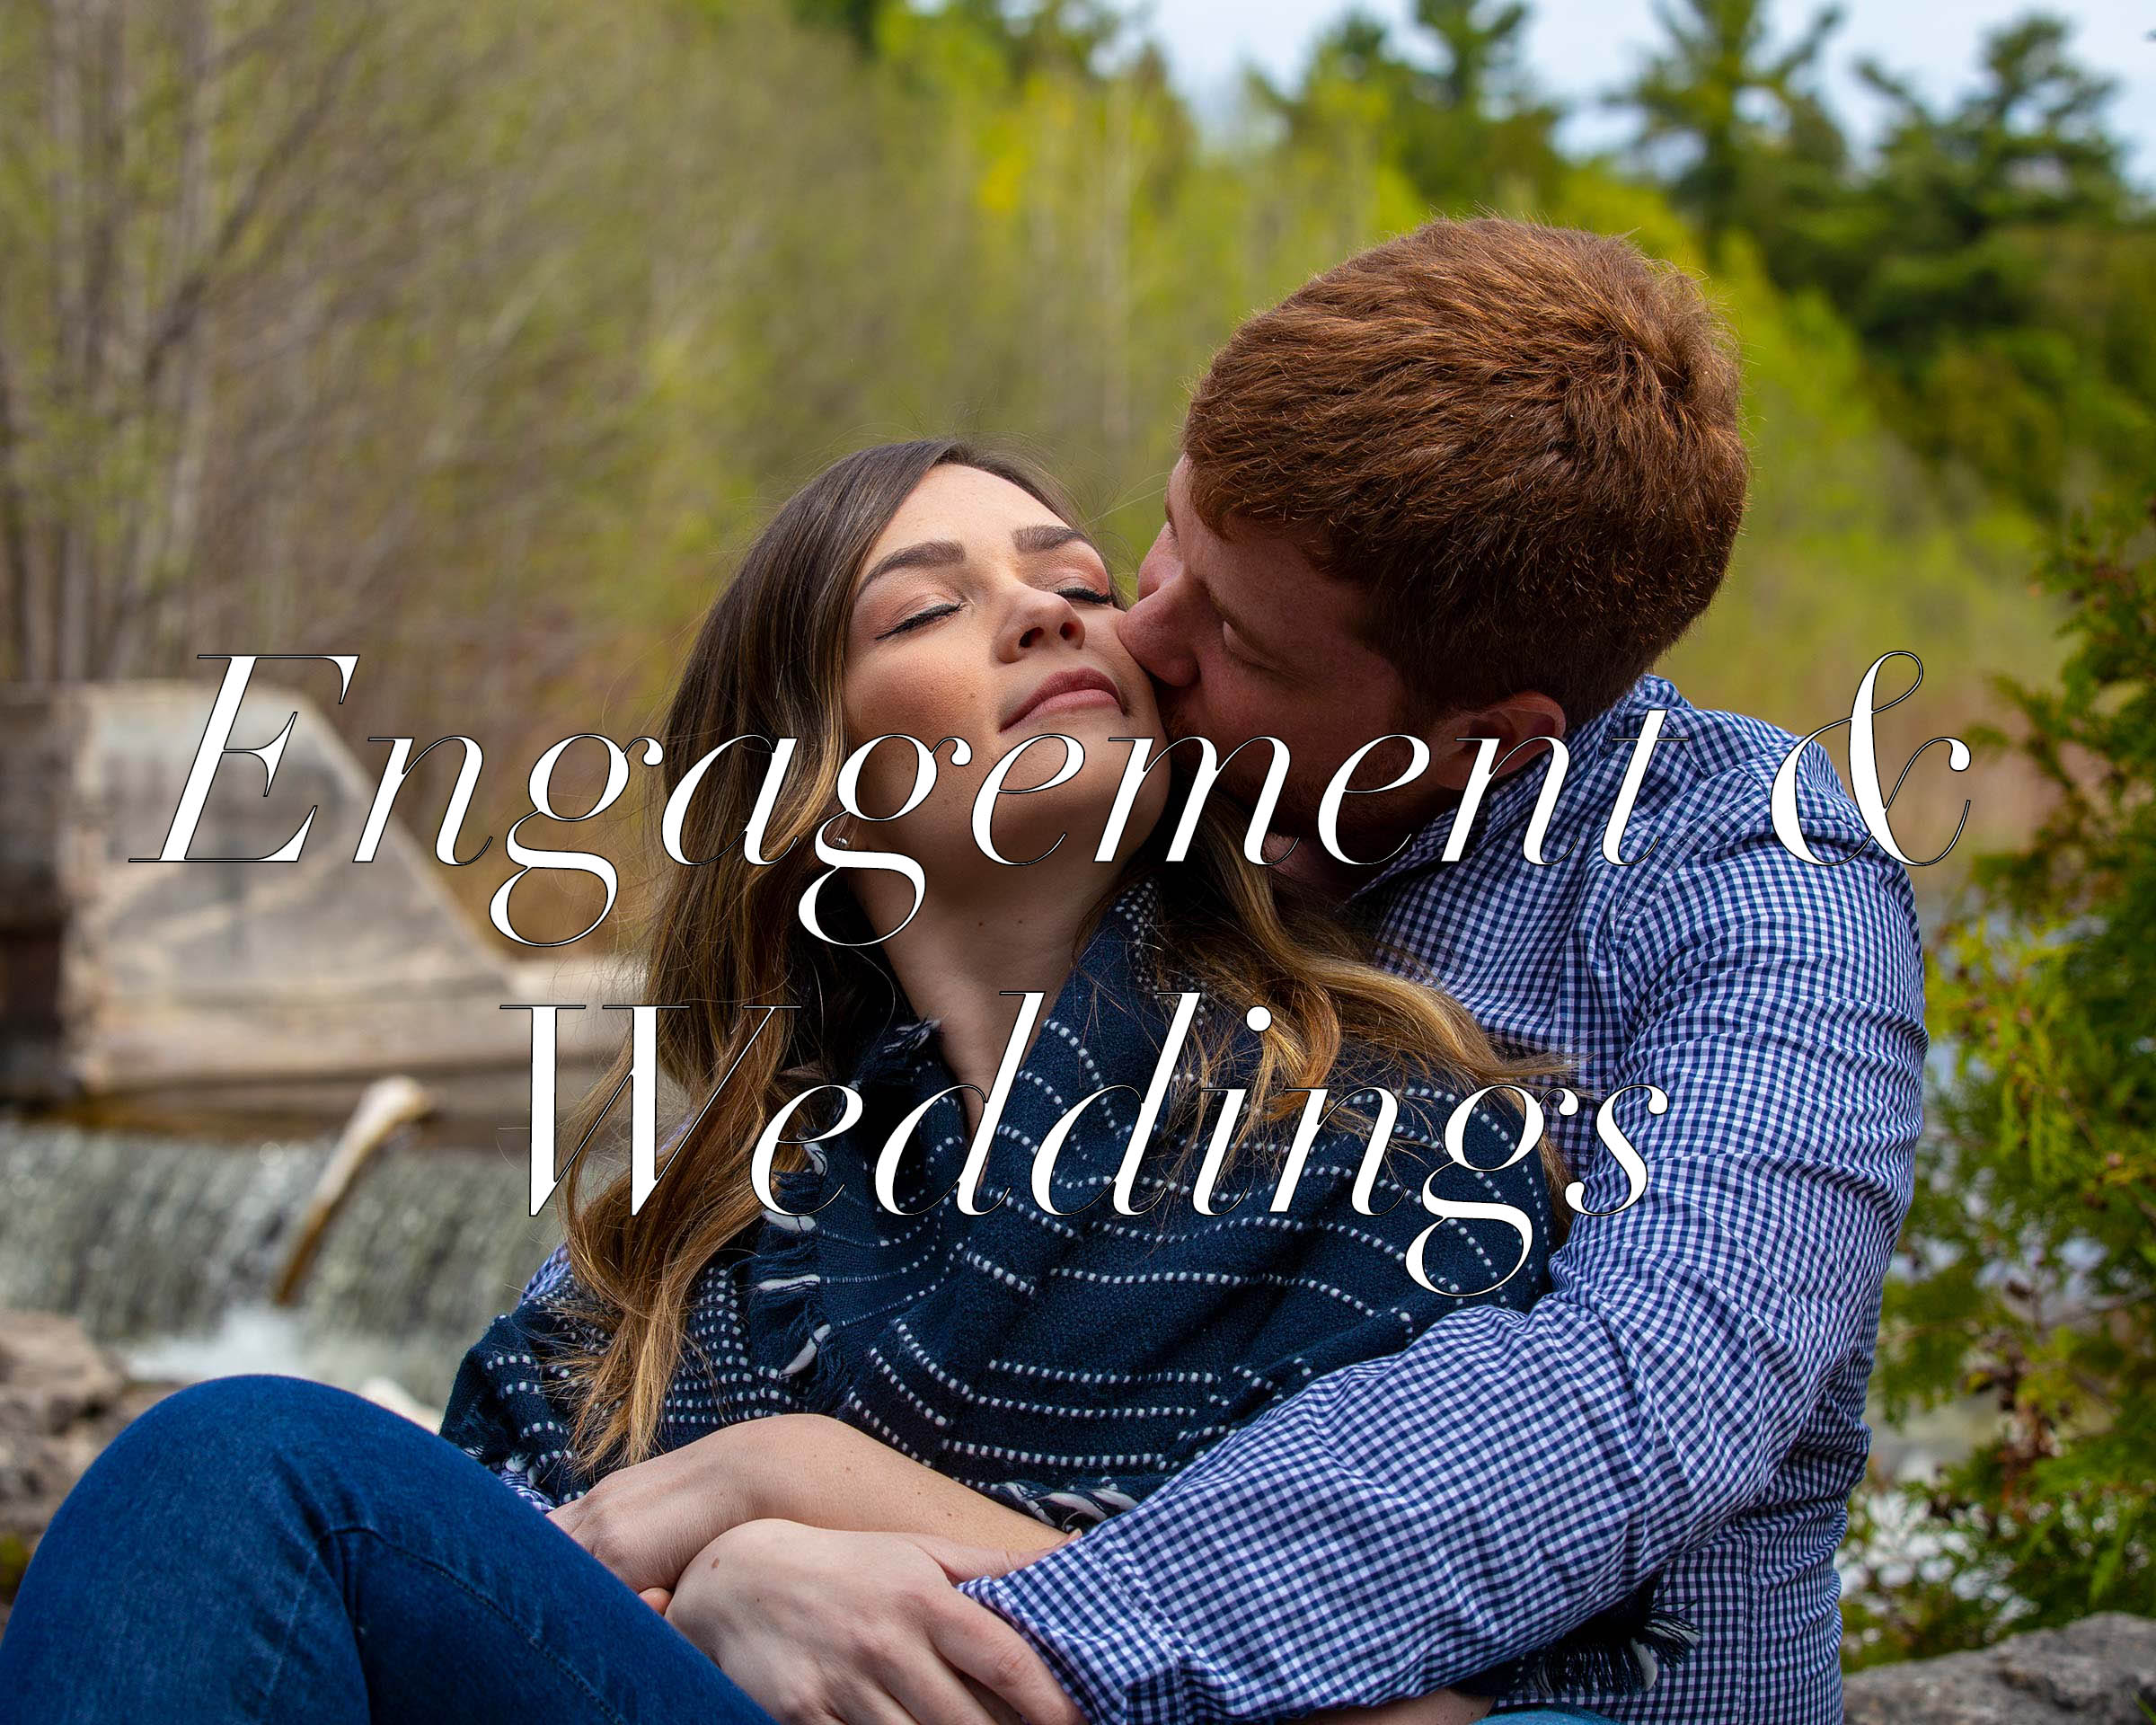 Engagement & Weddings